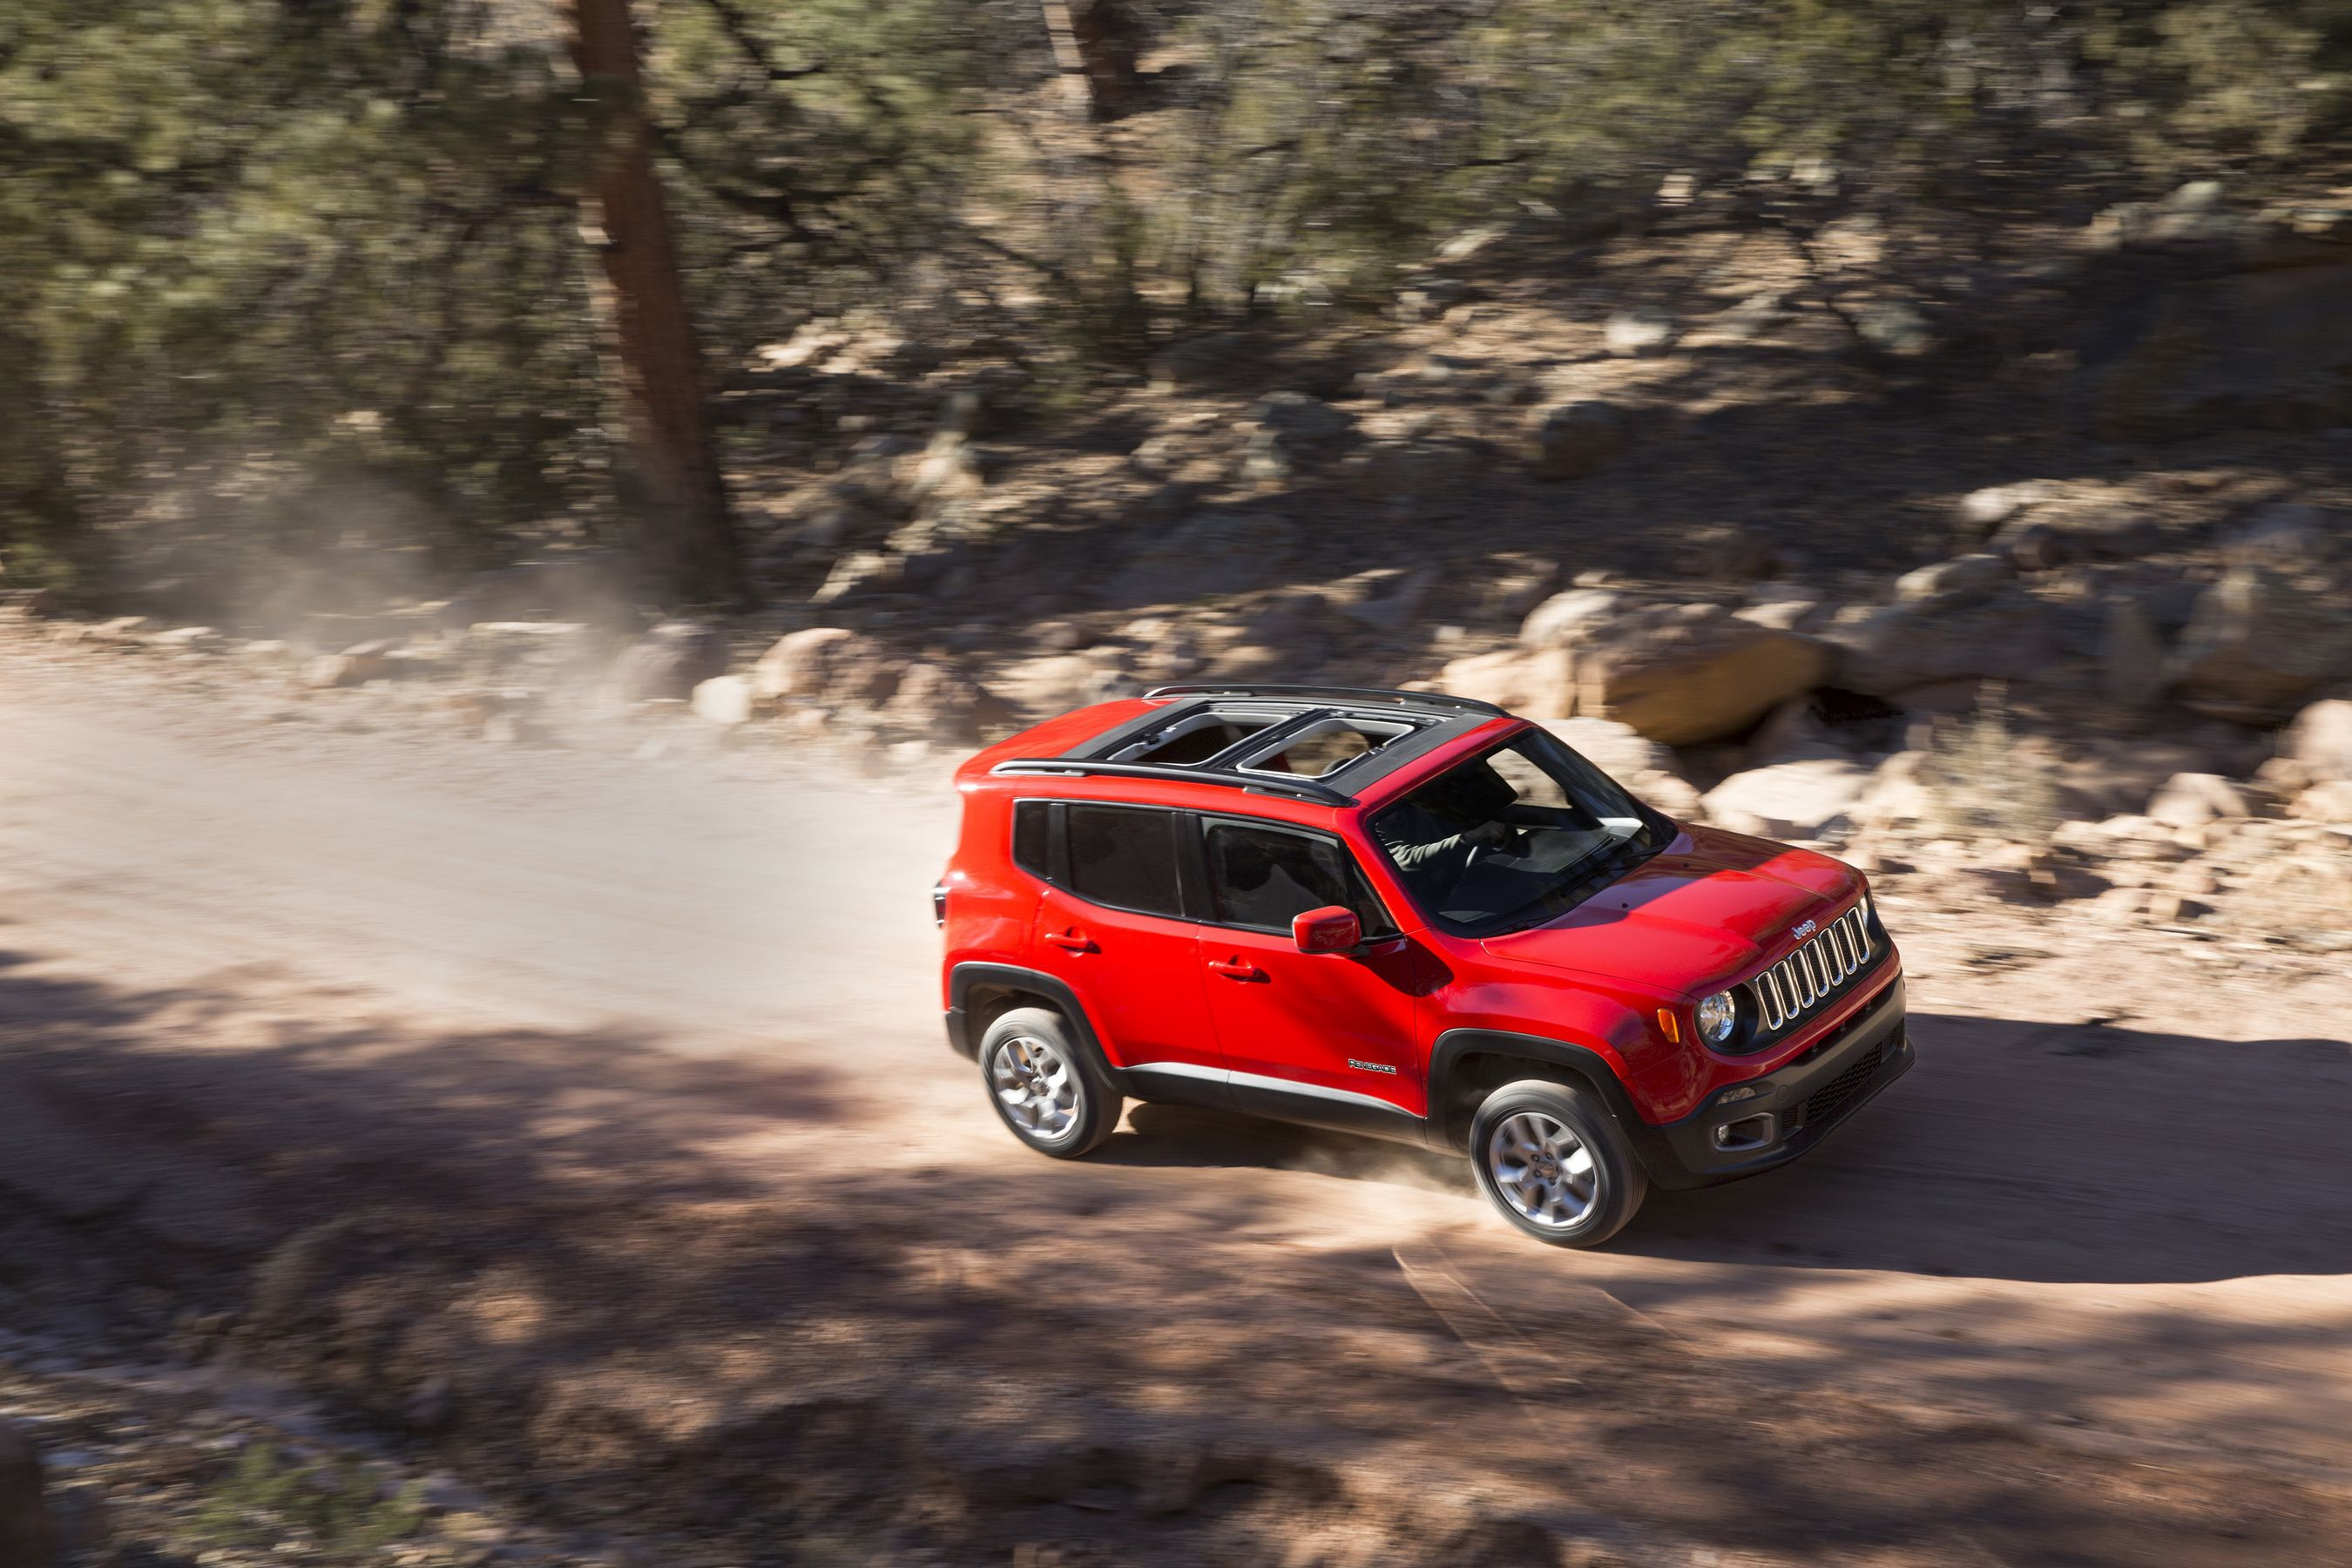 FILE - This file photo provided by Chrysler Group LLC shows the all-new 2015 Jeep Renegade. It looks like a classic Jeep with a vertical grille and round headlamps. (AP Photo/Chrysler Group LLC, file)